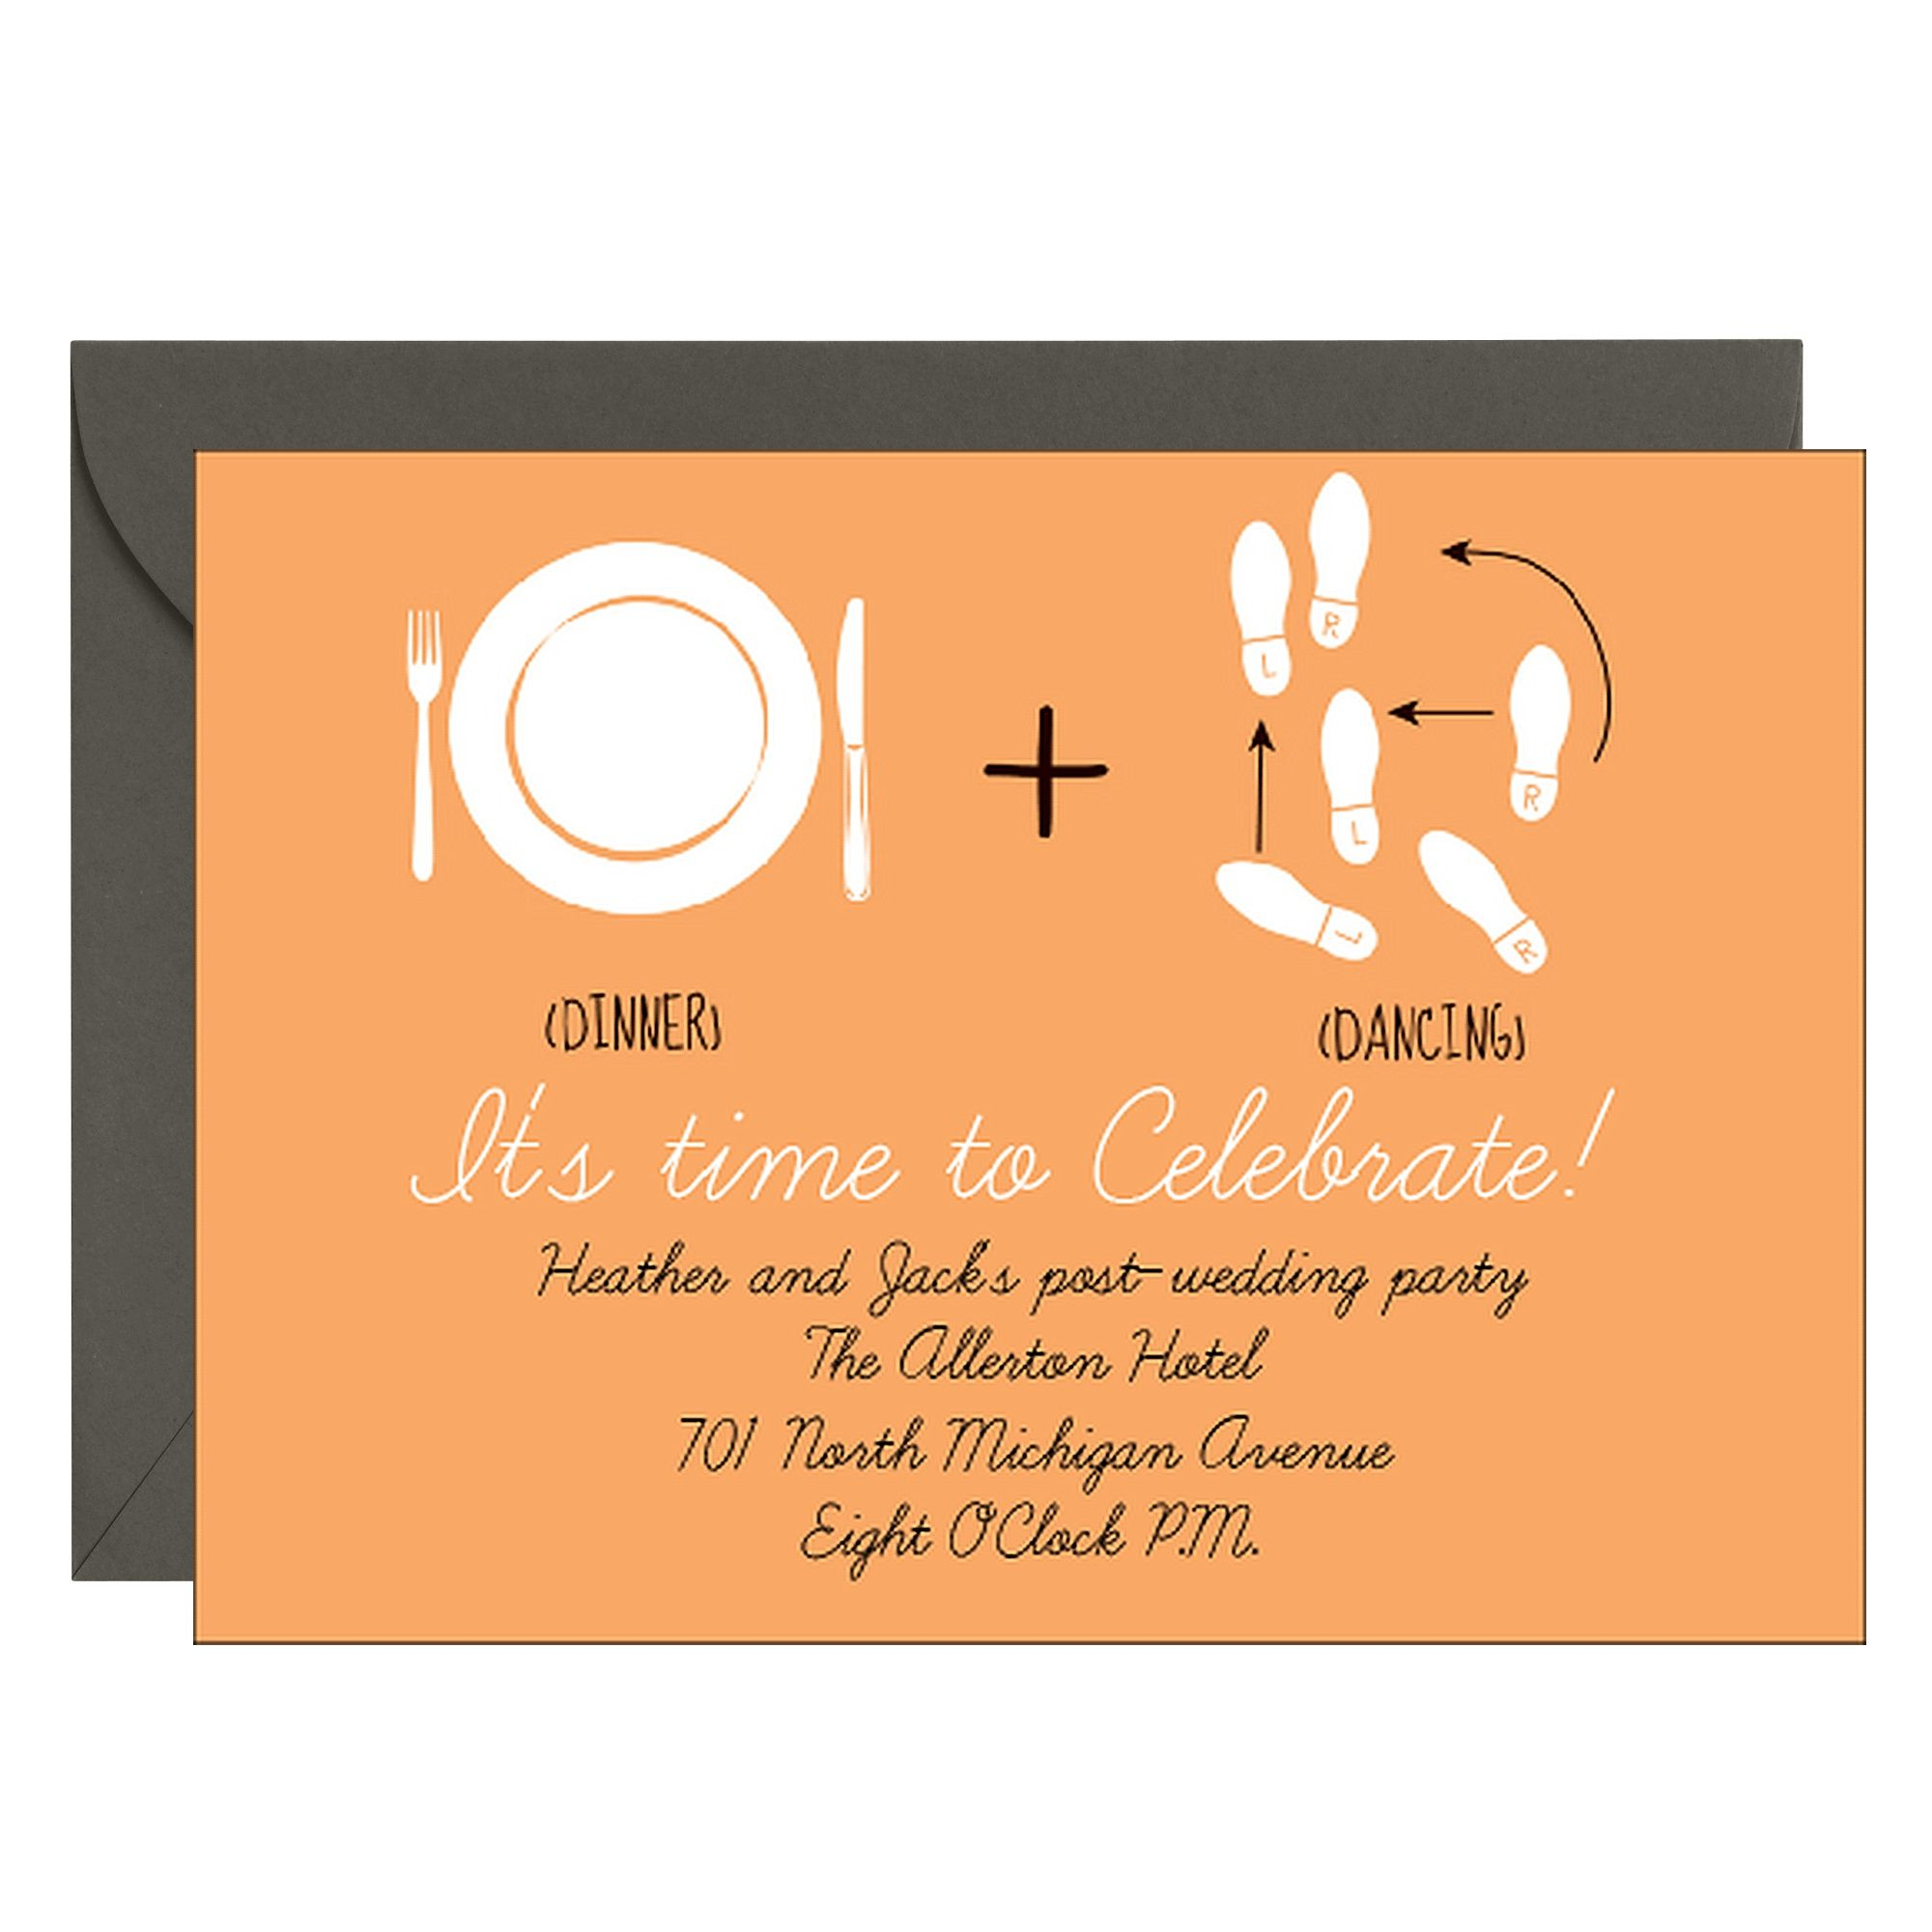 o.m.g. --> Dinner + Dancing Party Invitation